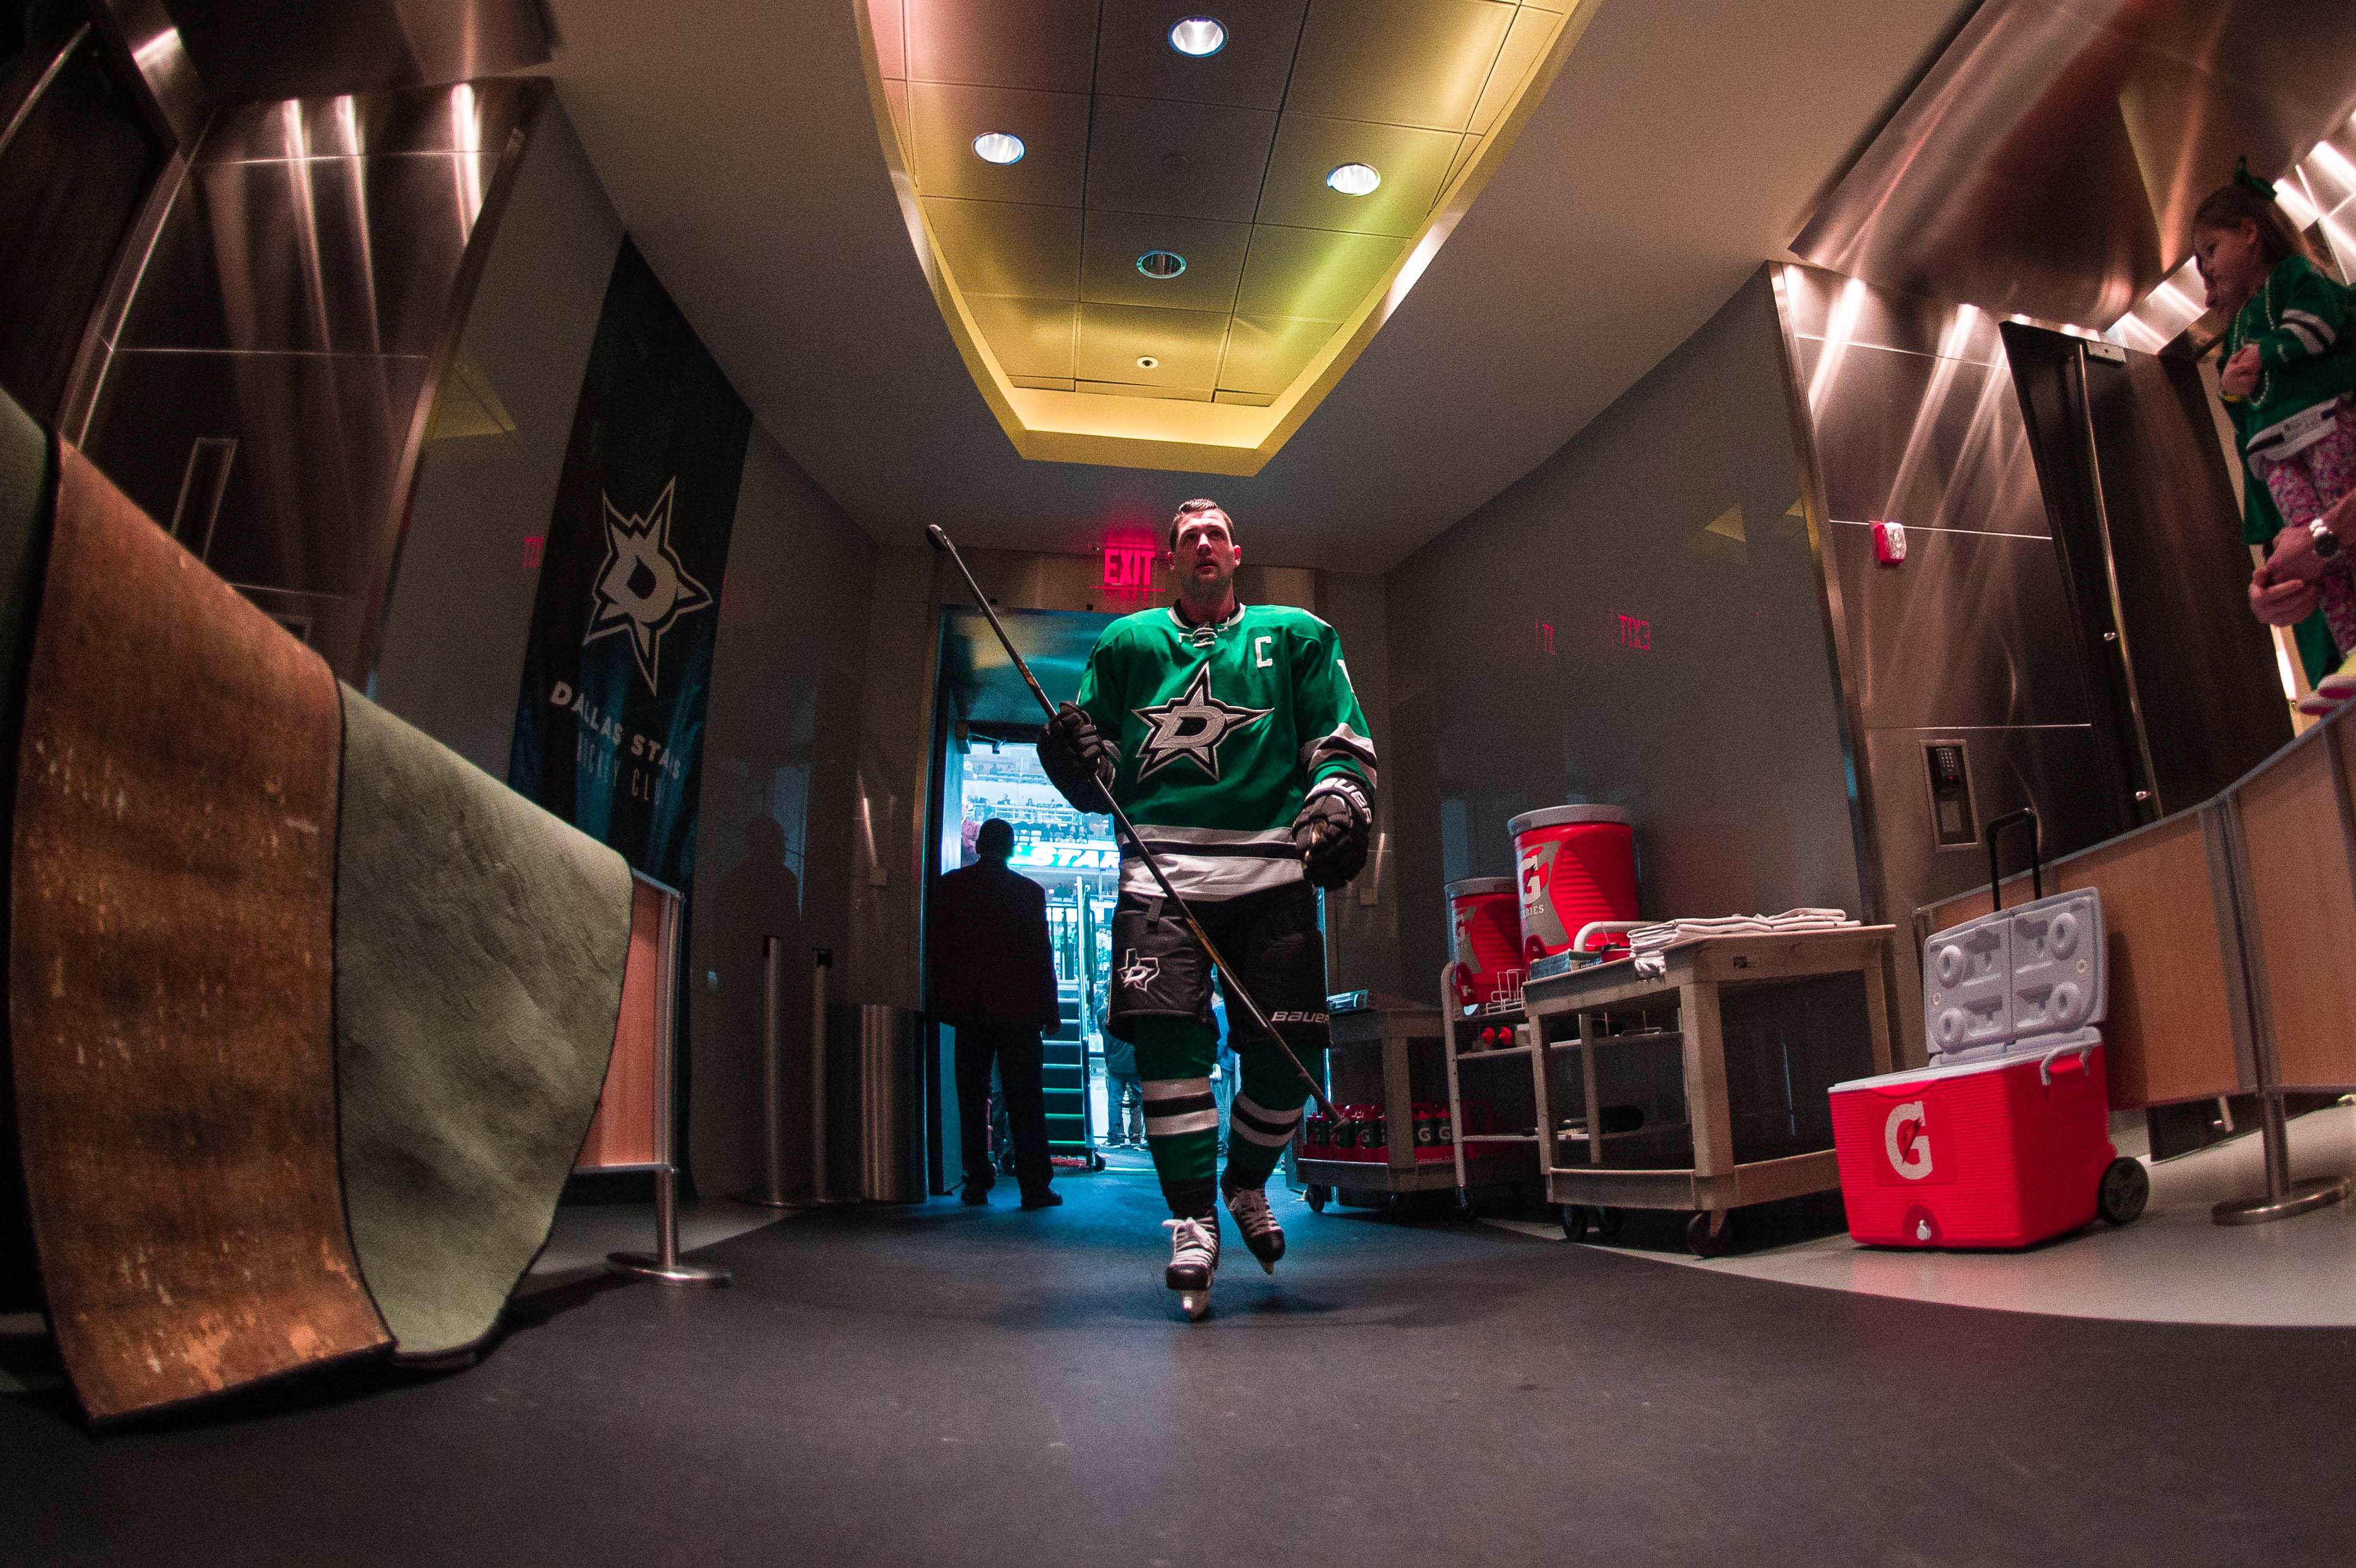 Apr 22, 2016; Dallas, TX, USA; Dallas Stars left wing Jamie Benn (14) leaves the ice in game five against the Minnesota Wild in the first round of the 2016 Stanley Cup Playoffs at the American Airlines Center. The Wild defeat the Stars 5-4. Mandatory Credit: Jerome Miron-USA TODAY Sports